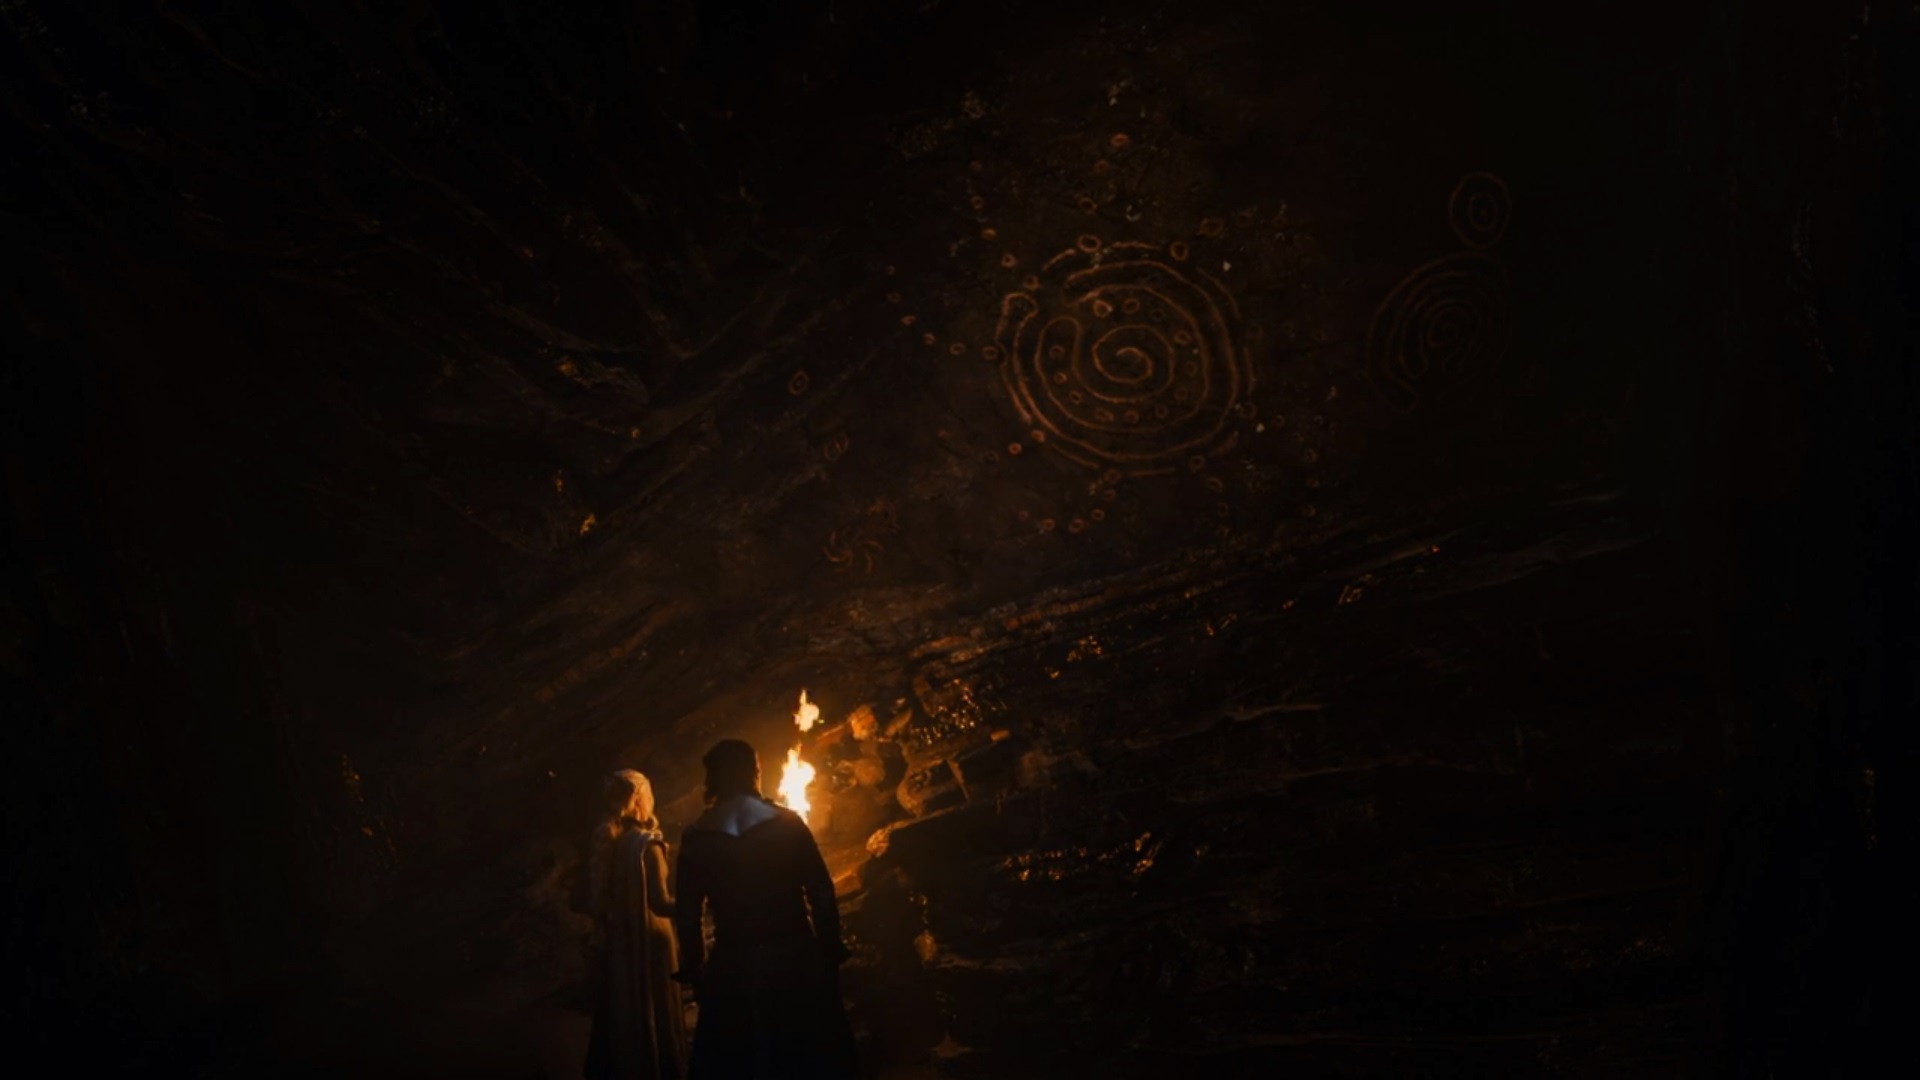 Jon Snow and Daenerys Targaryen in the caves under Dragonstone with the drawings of the Children of the Forest